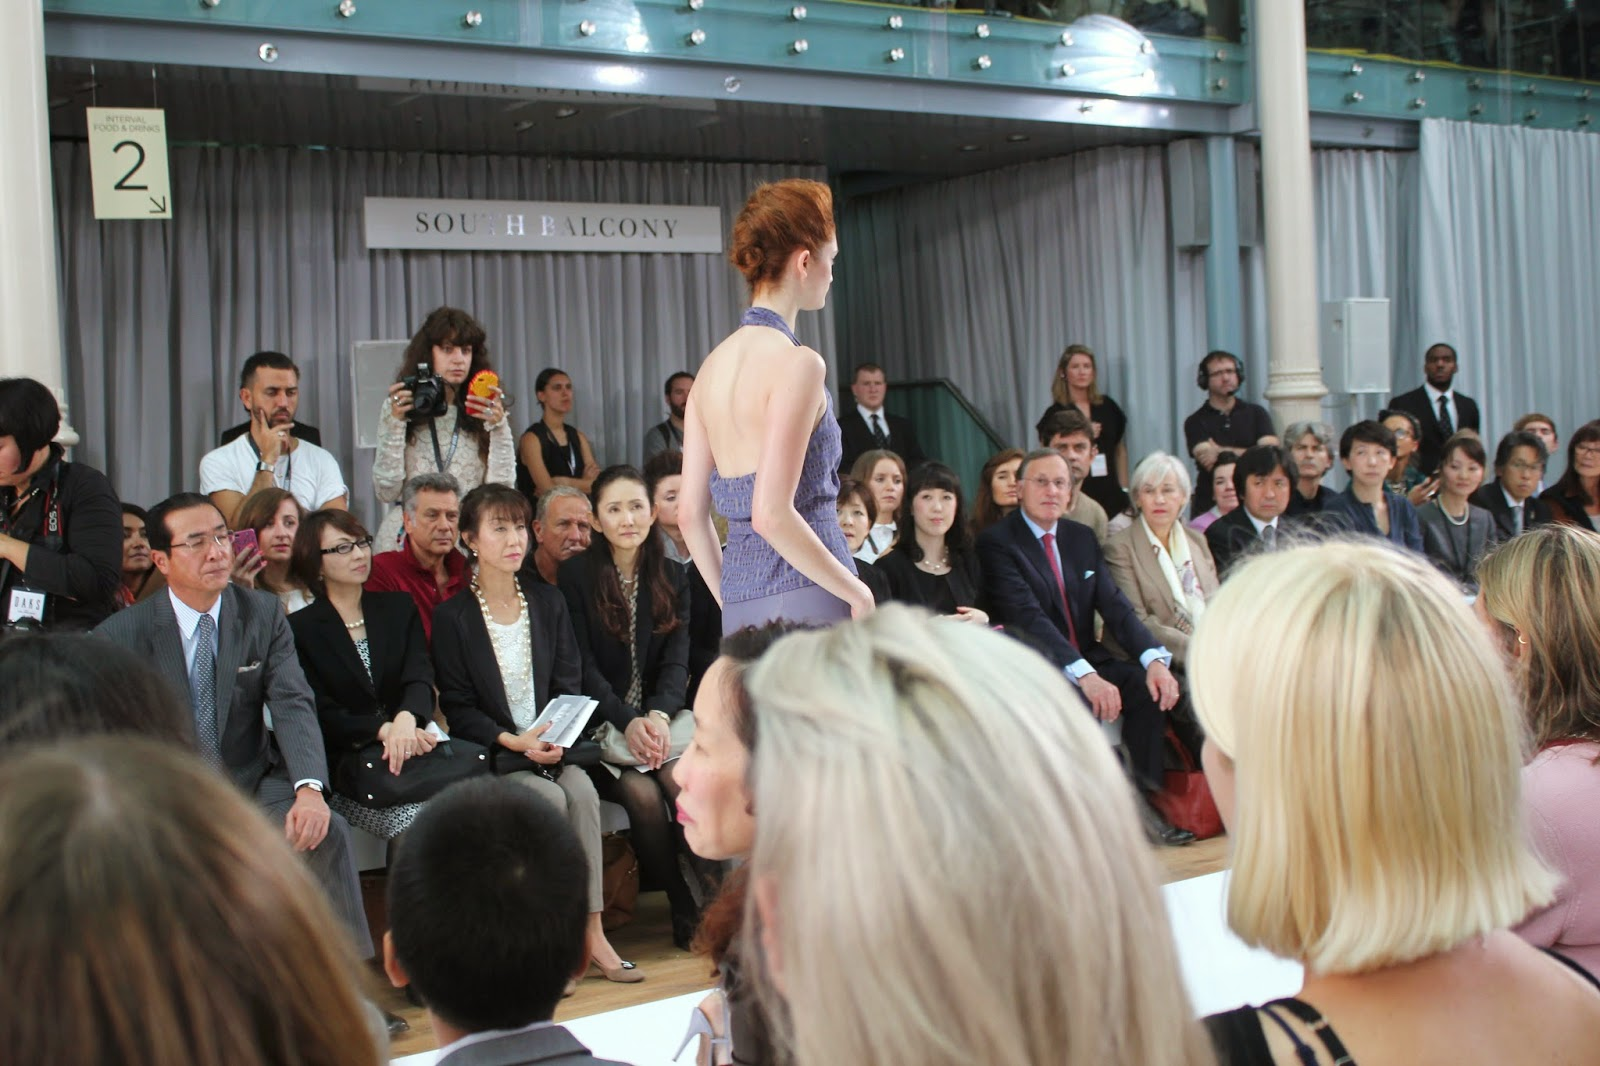 london-fashion-week-2014-lfw-DAKS-show-catwalk-spring-summer-2015-models-clothes-fashion-frow-royal-opera-house